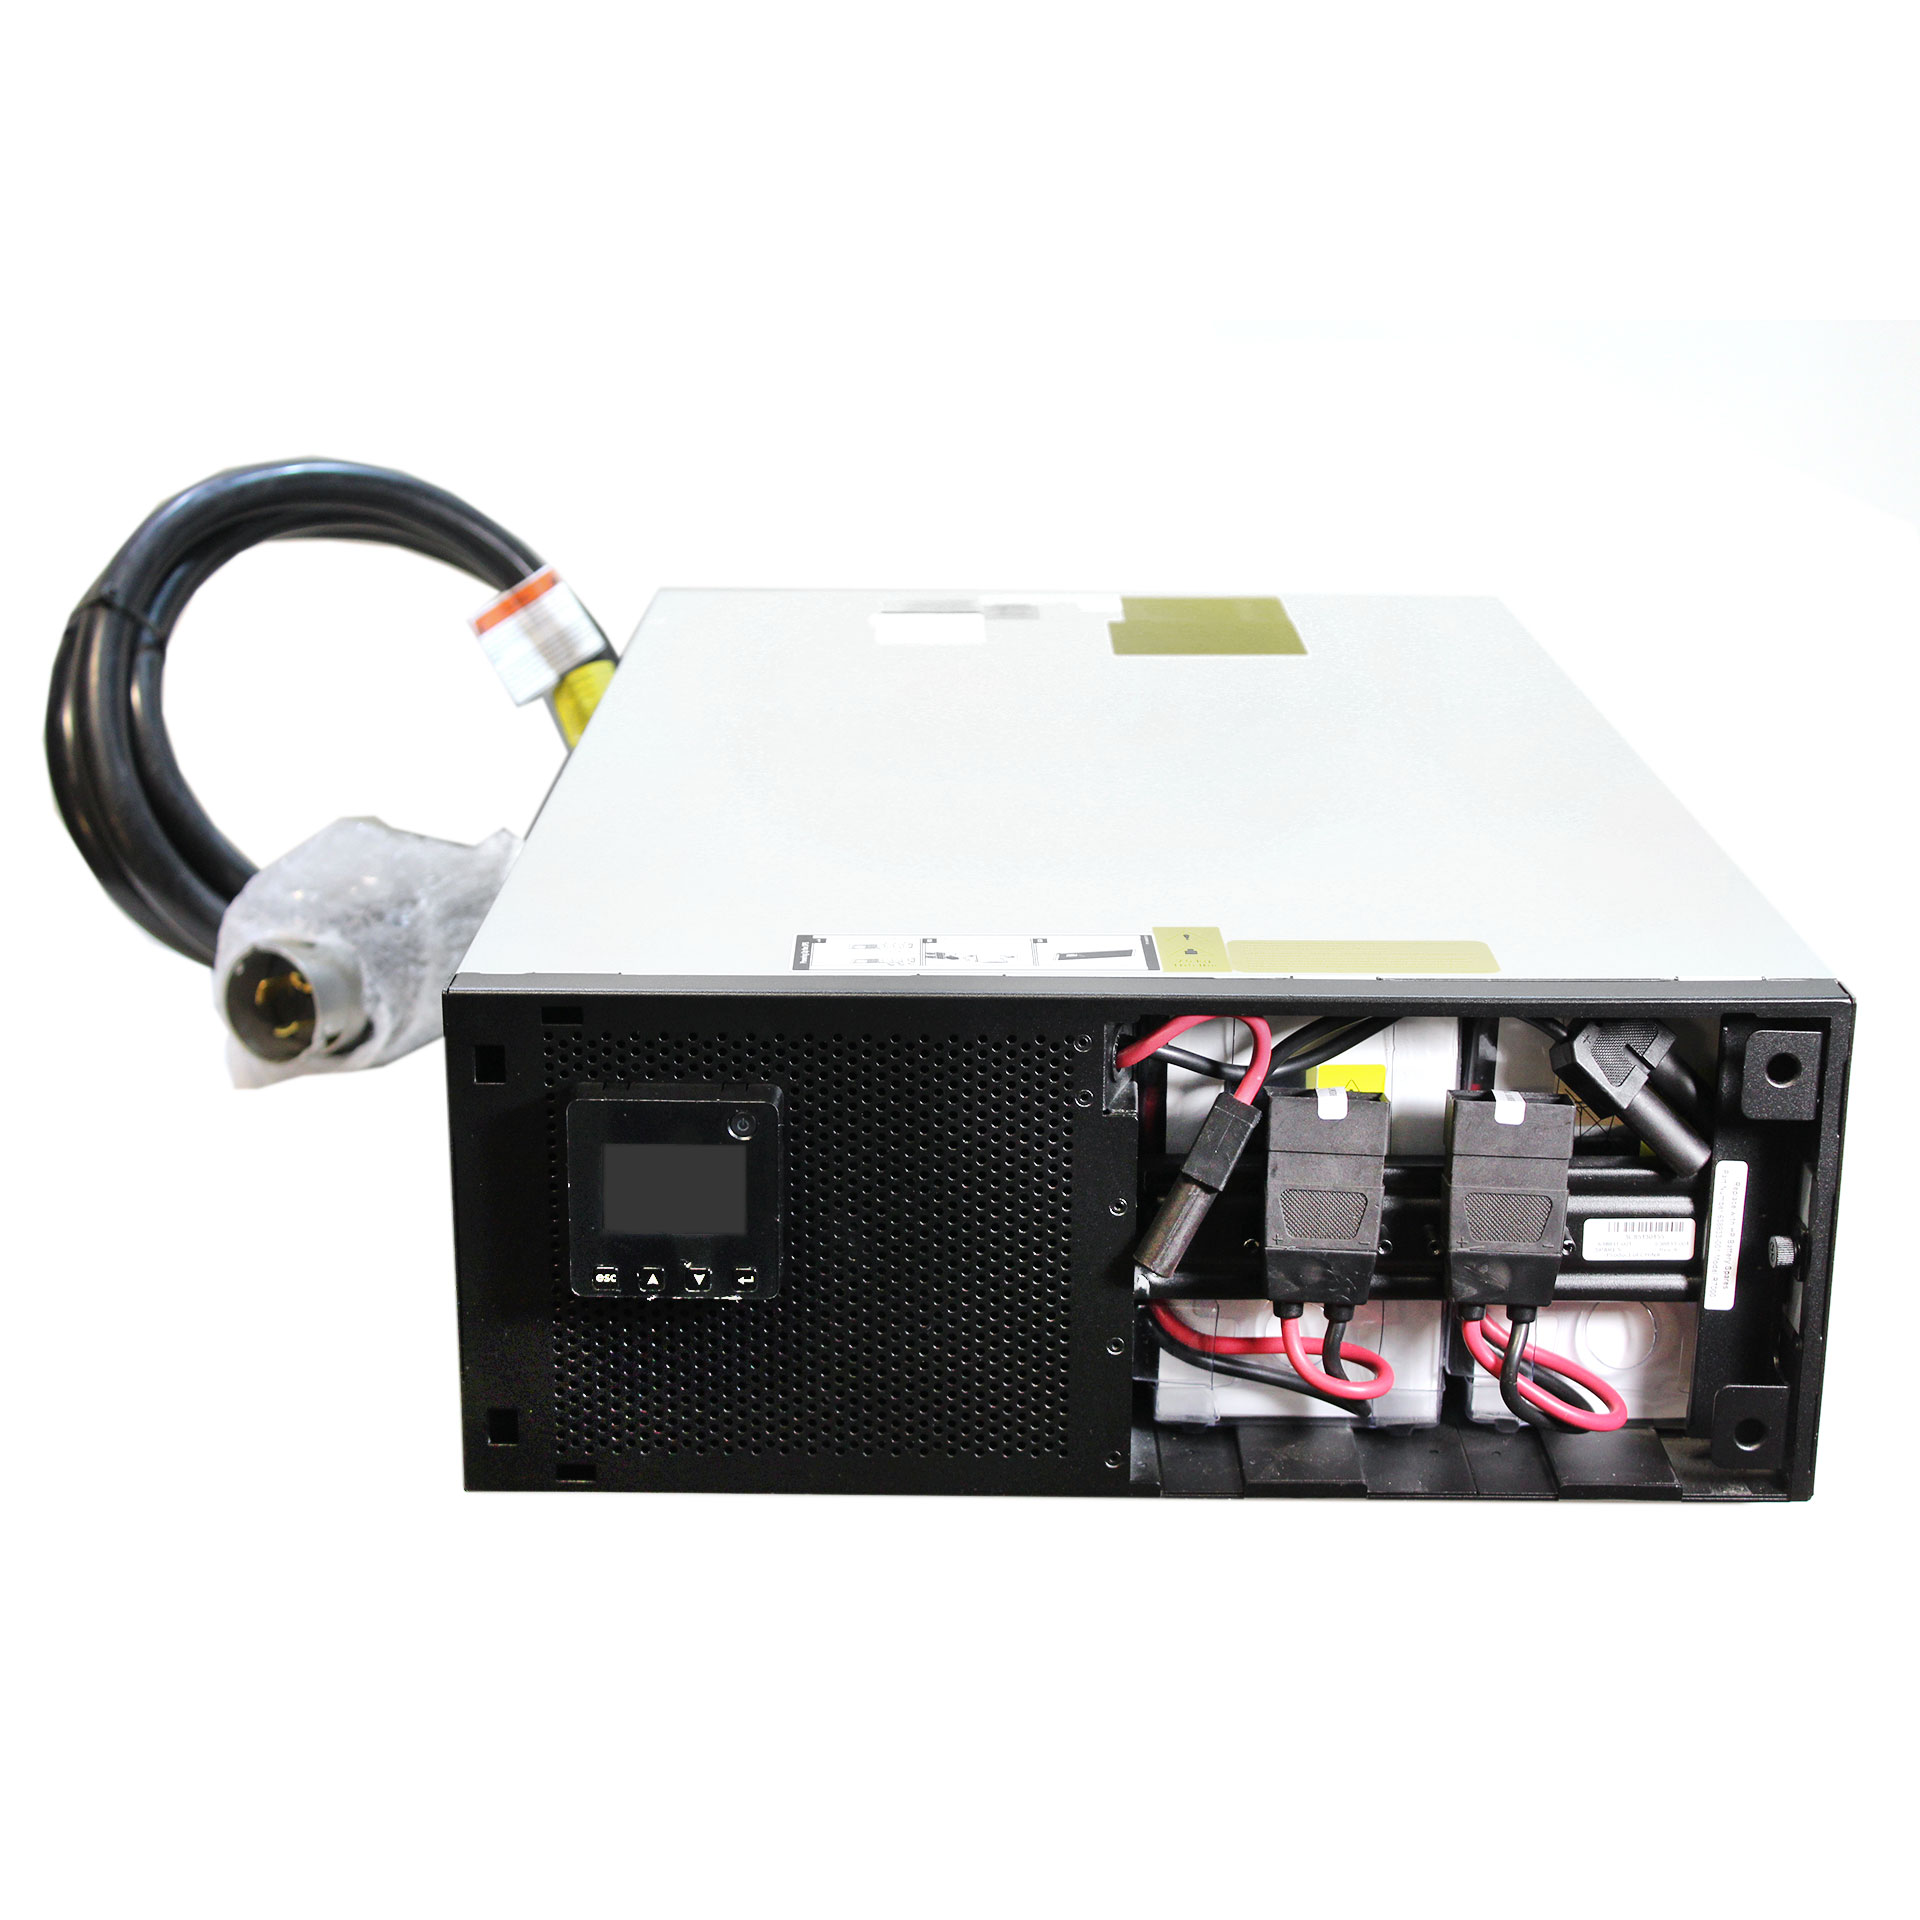 HP R7000 4U 50A High Voltage NA/JP UPS (Japan model)